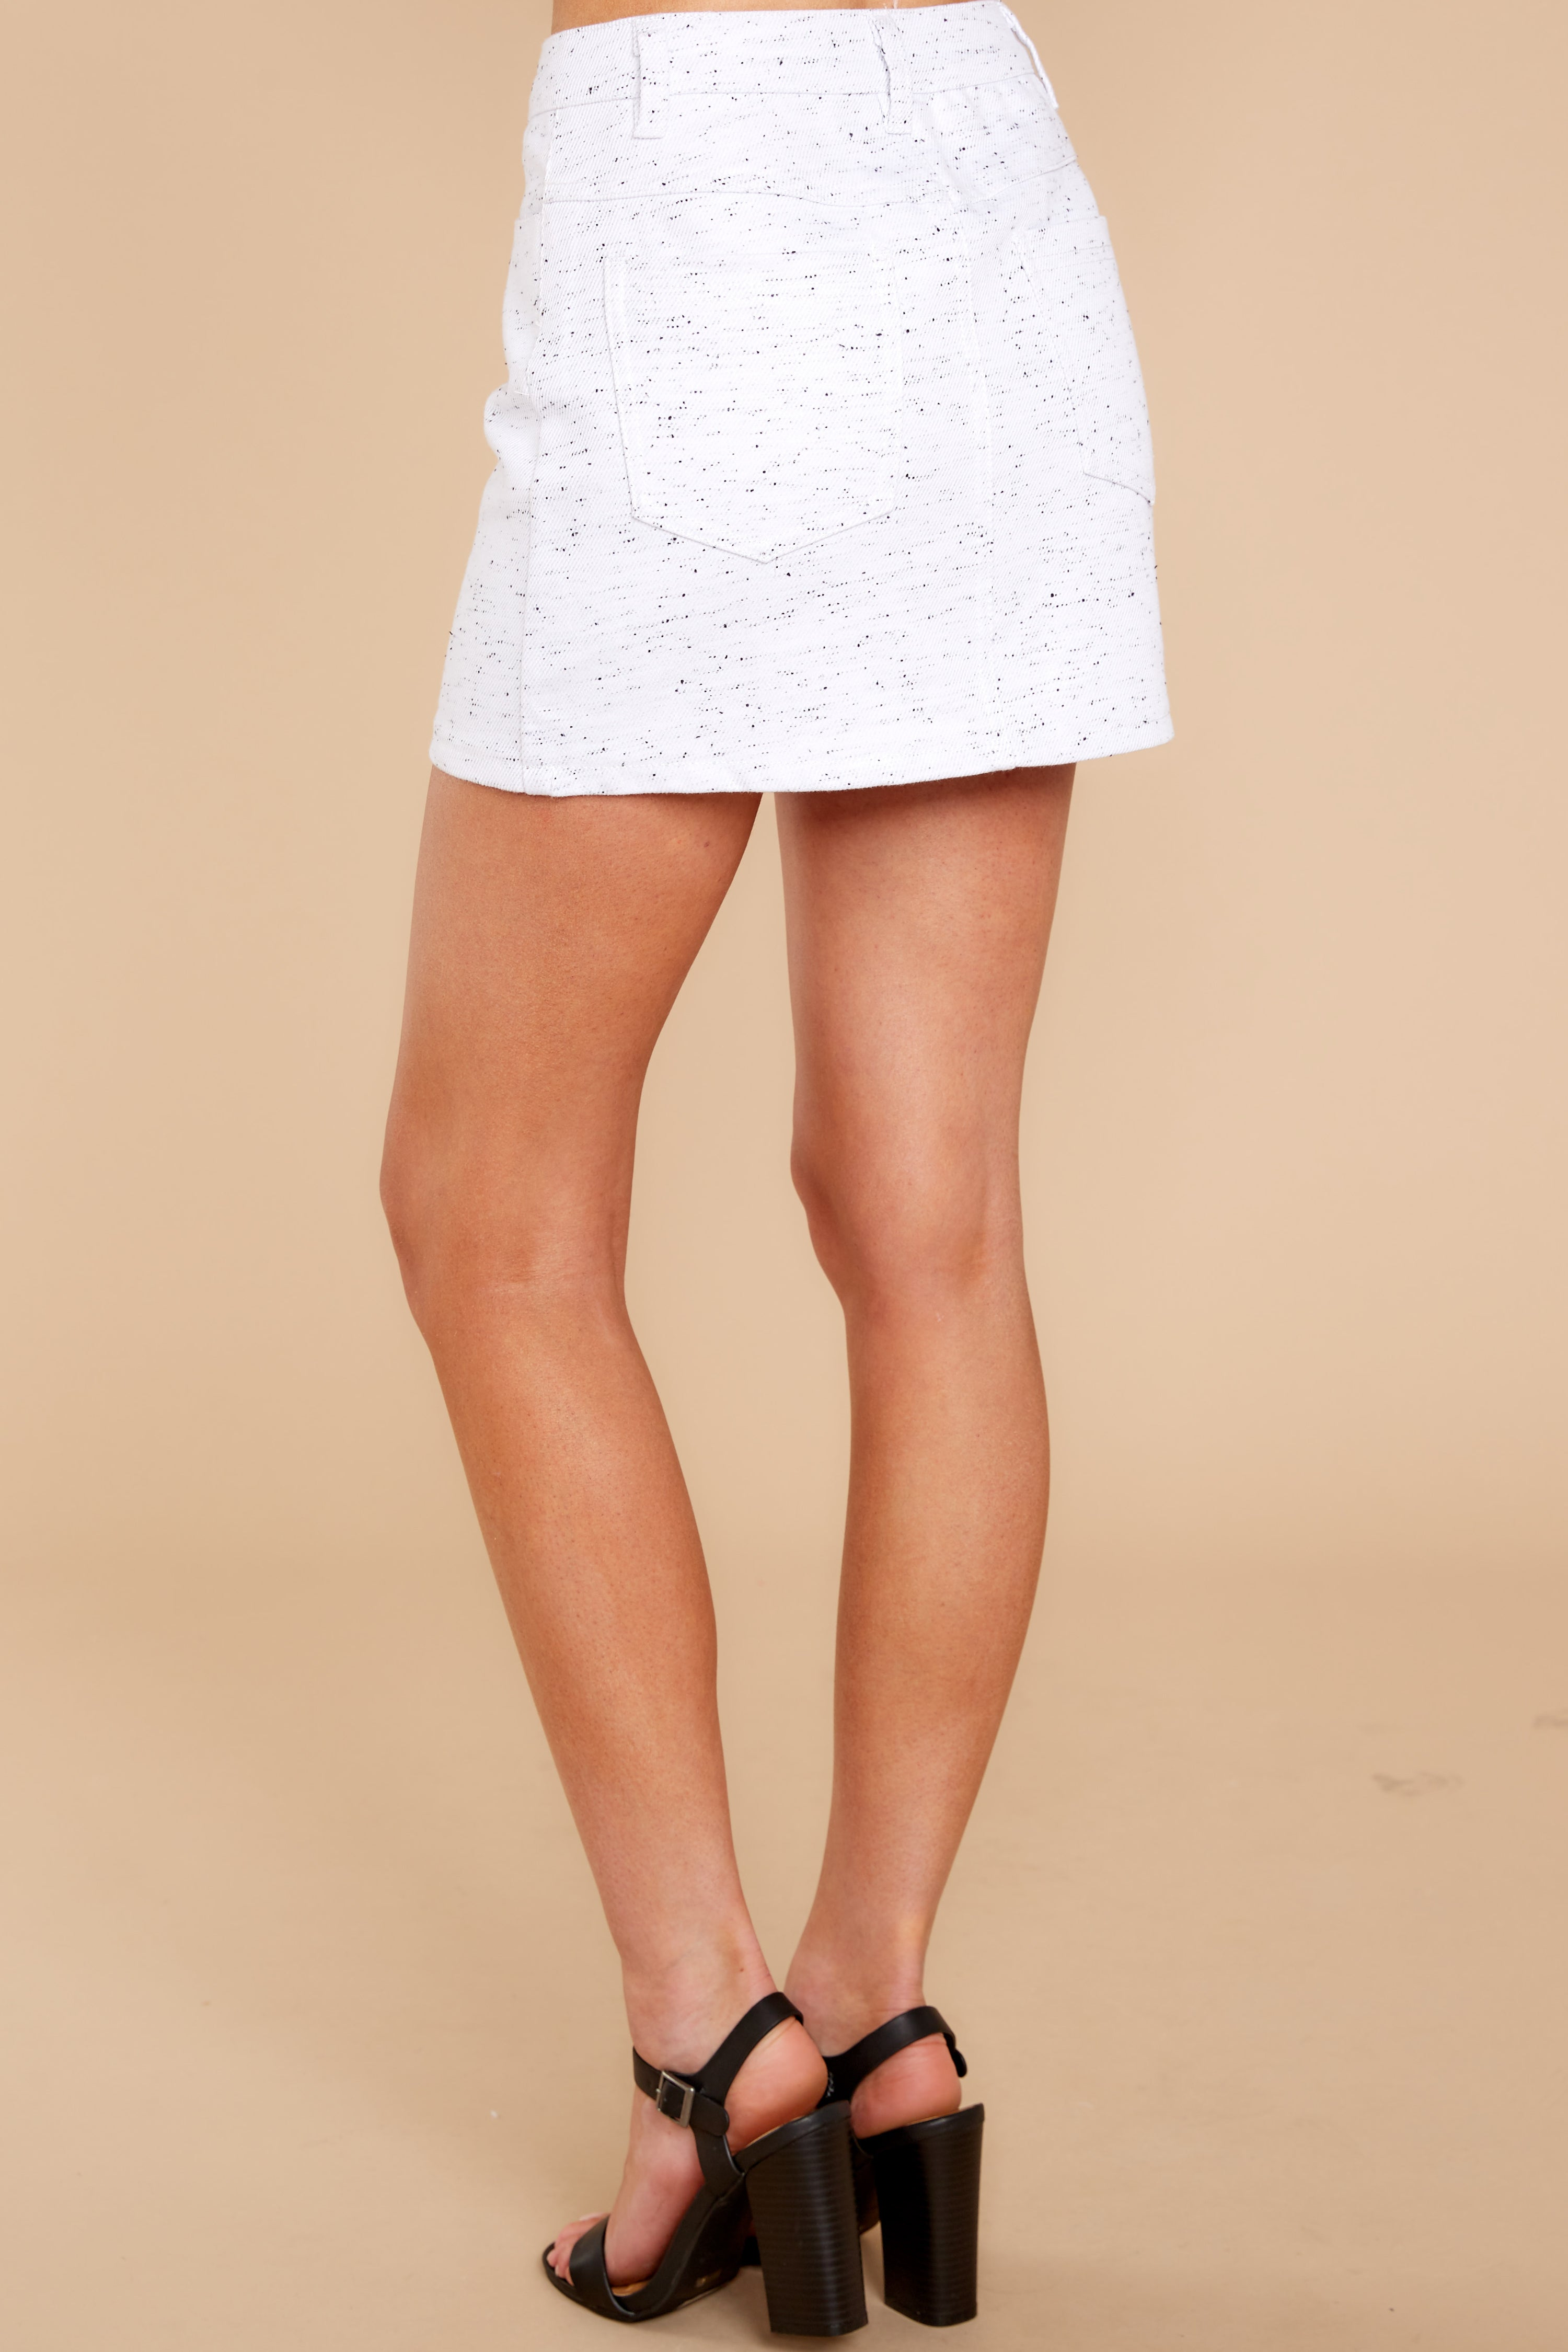 4 In Search Of You White Print Skirt at reddressboutique.com